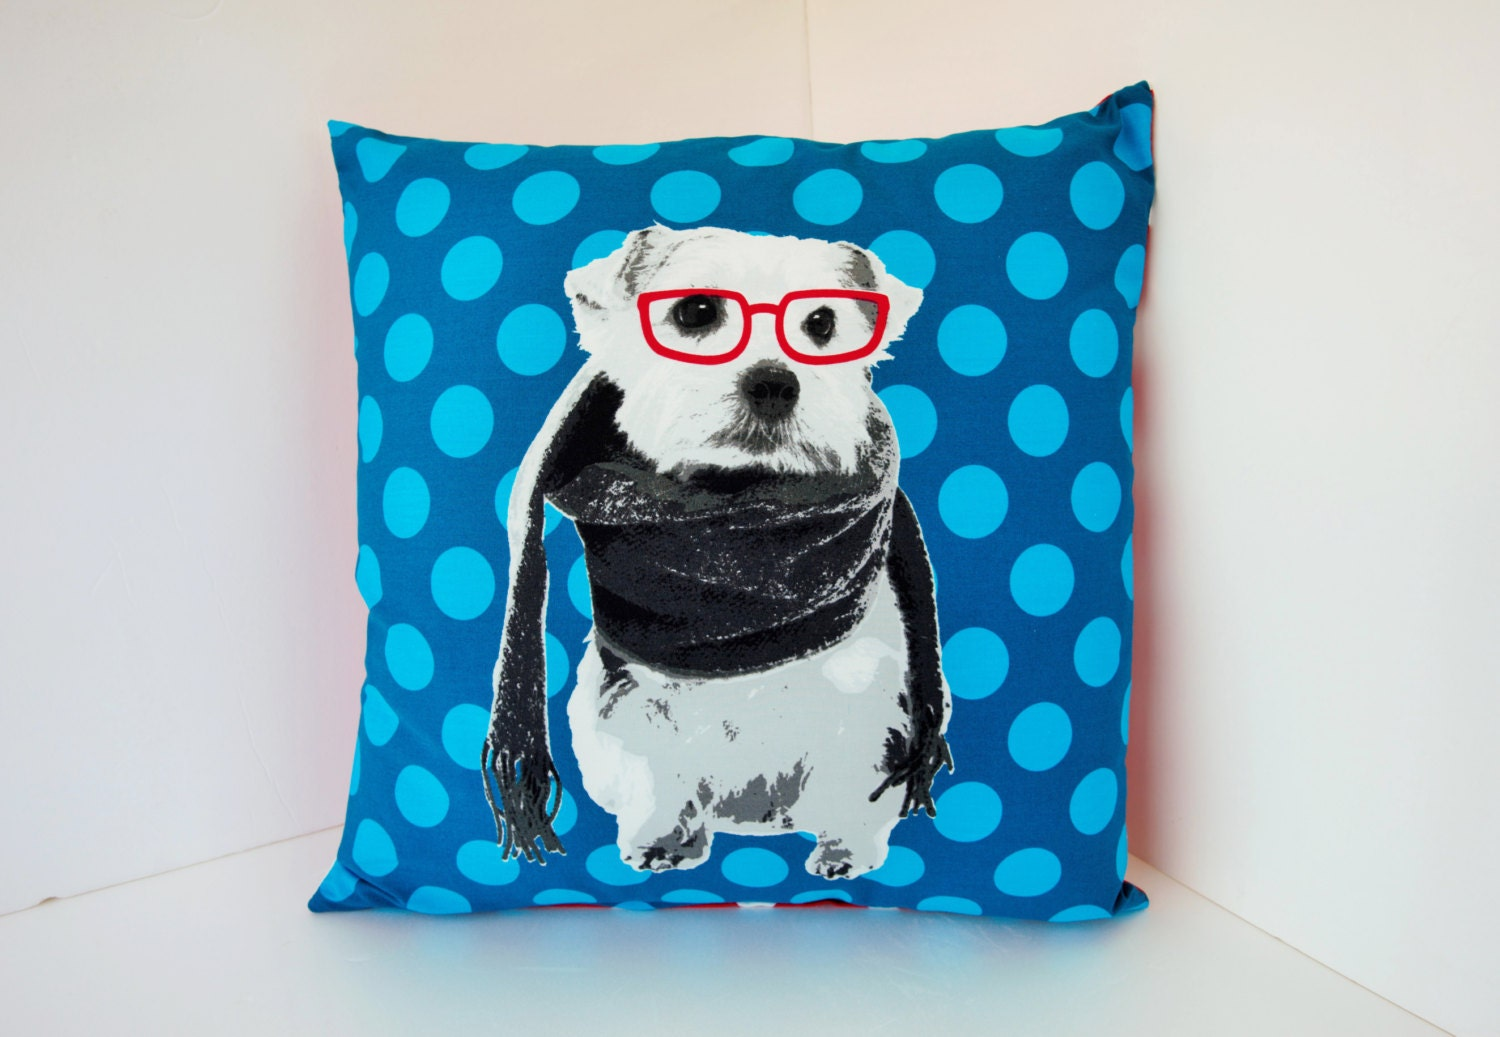 Decorative Pillows Dog : Dog pillow case sofa bedding pillow throw decorative pillow